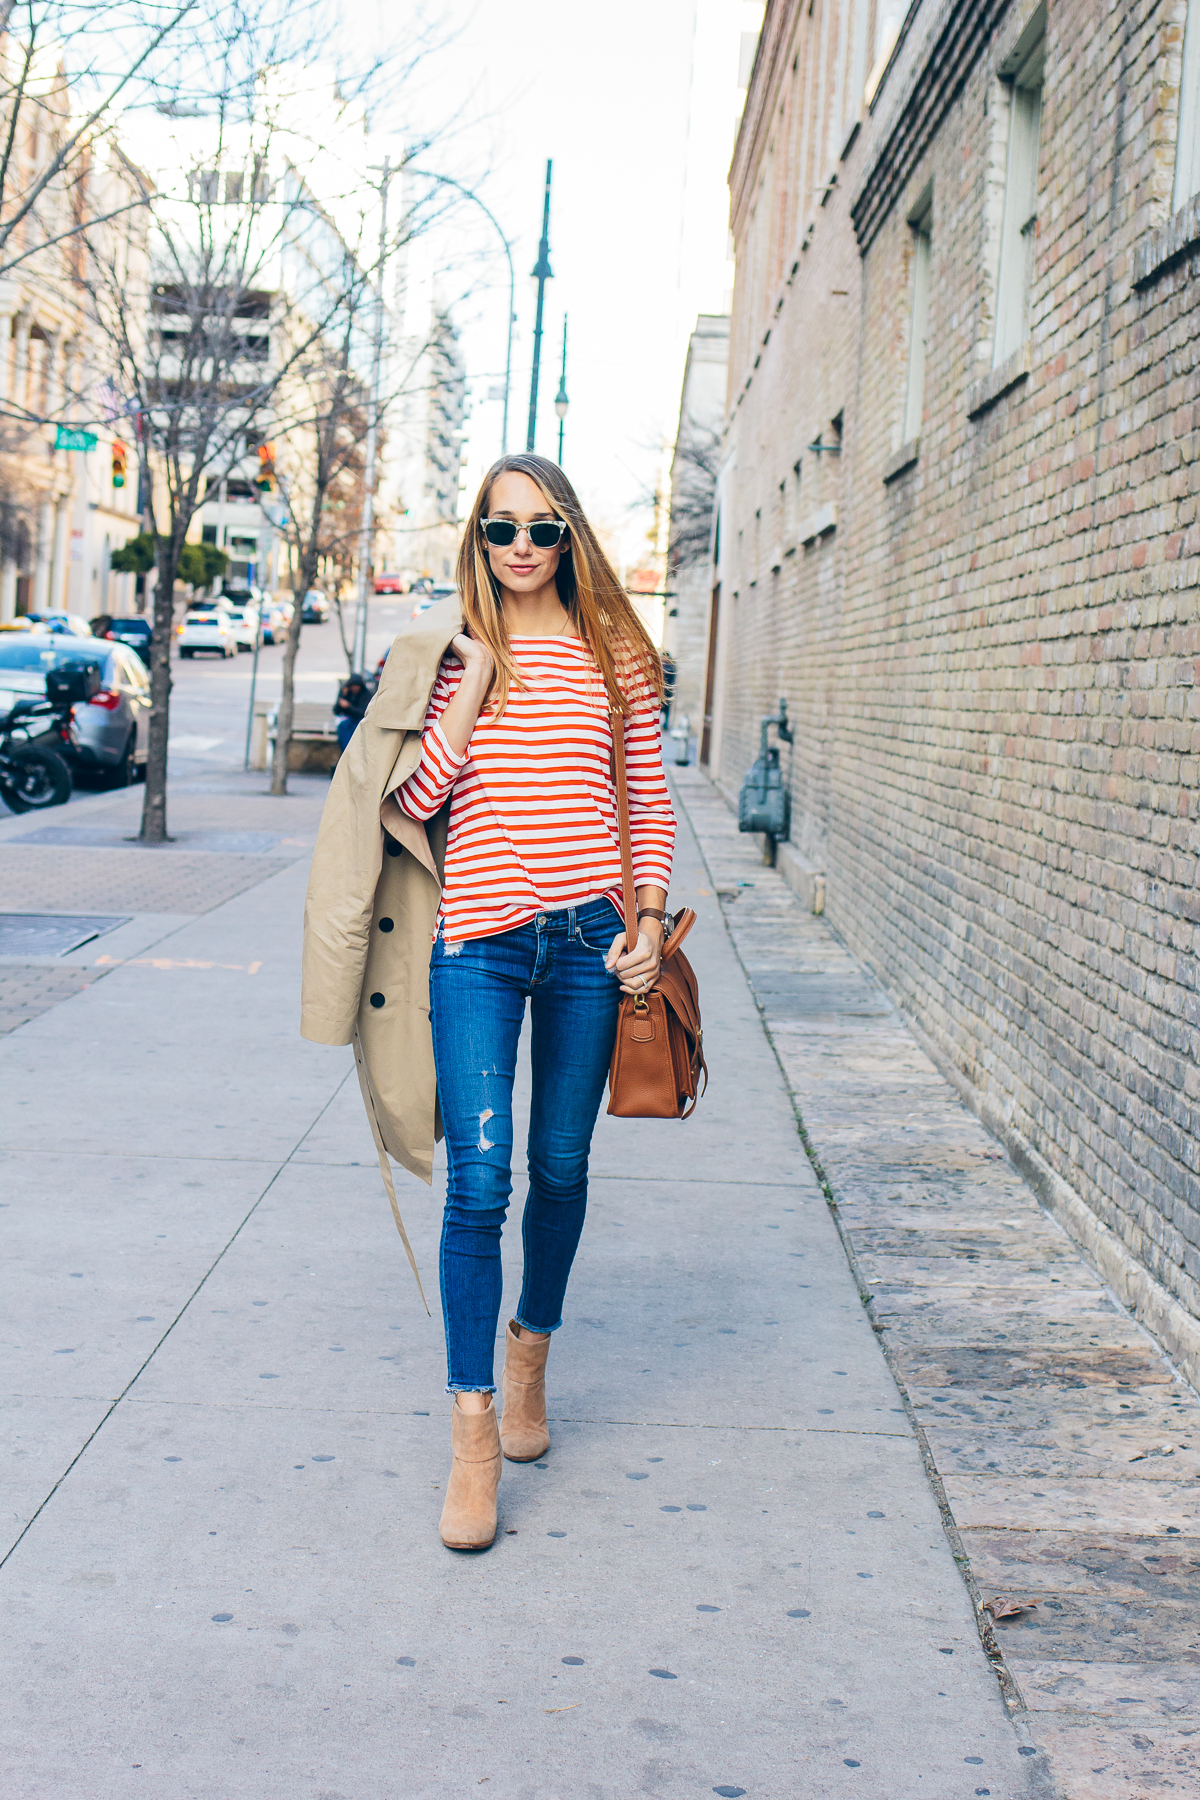 striped tee, trench coat, distressed jeans, tan booties, casual outfit, everyday outfit — via @TheFoxandShe